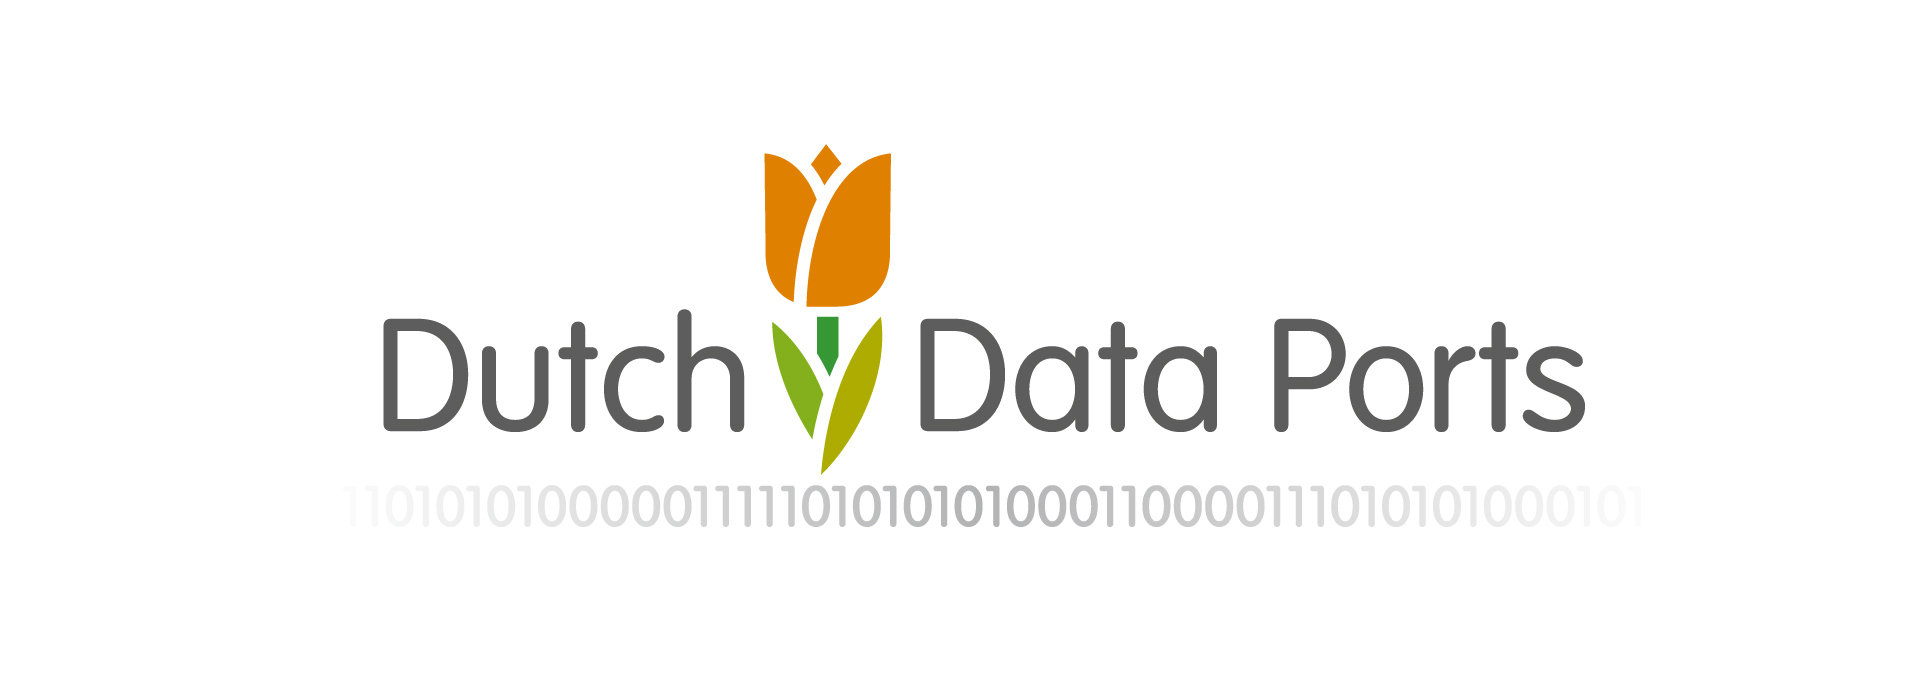 dutch data ports logo